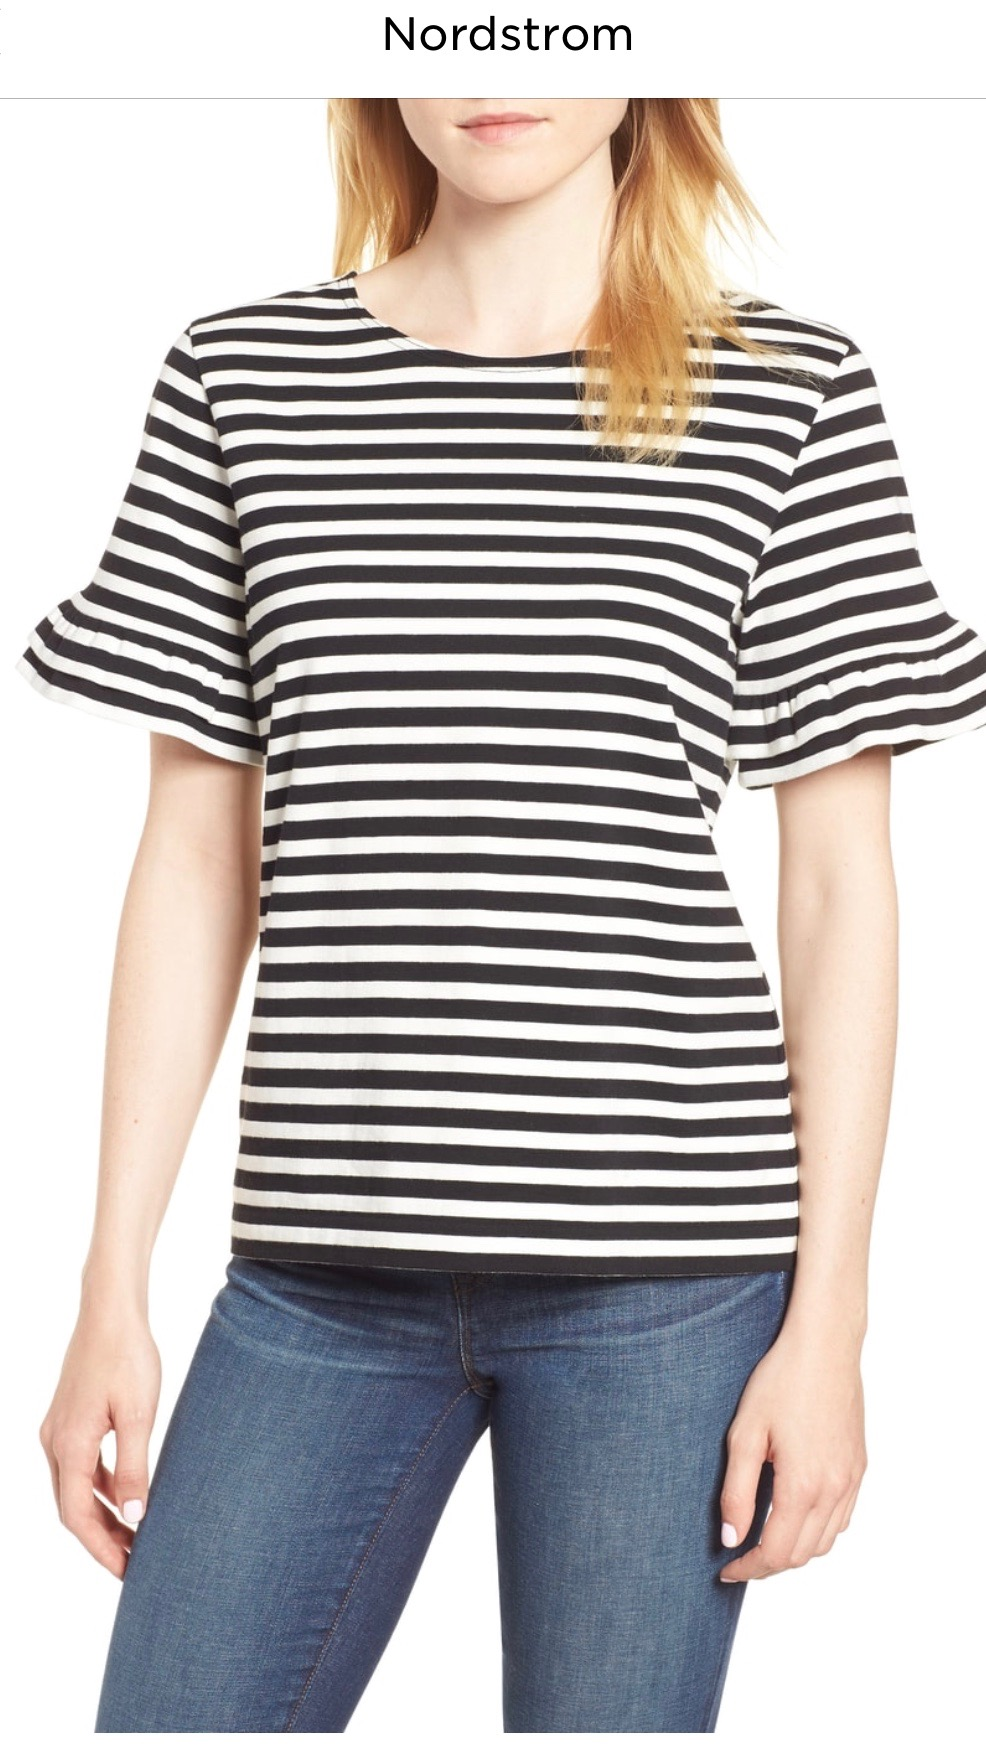 J.Crew Ruffle Sleeve Tee   BLACK WHITE, Small  $32.90